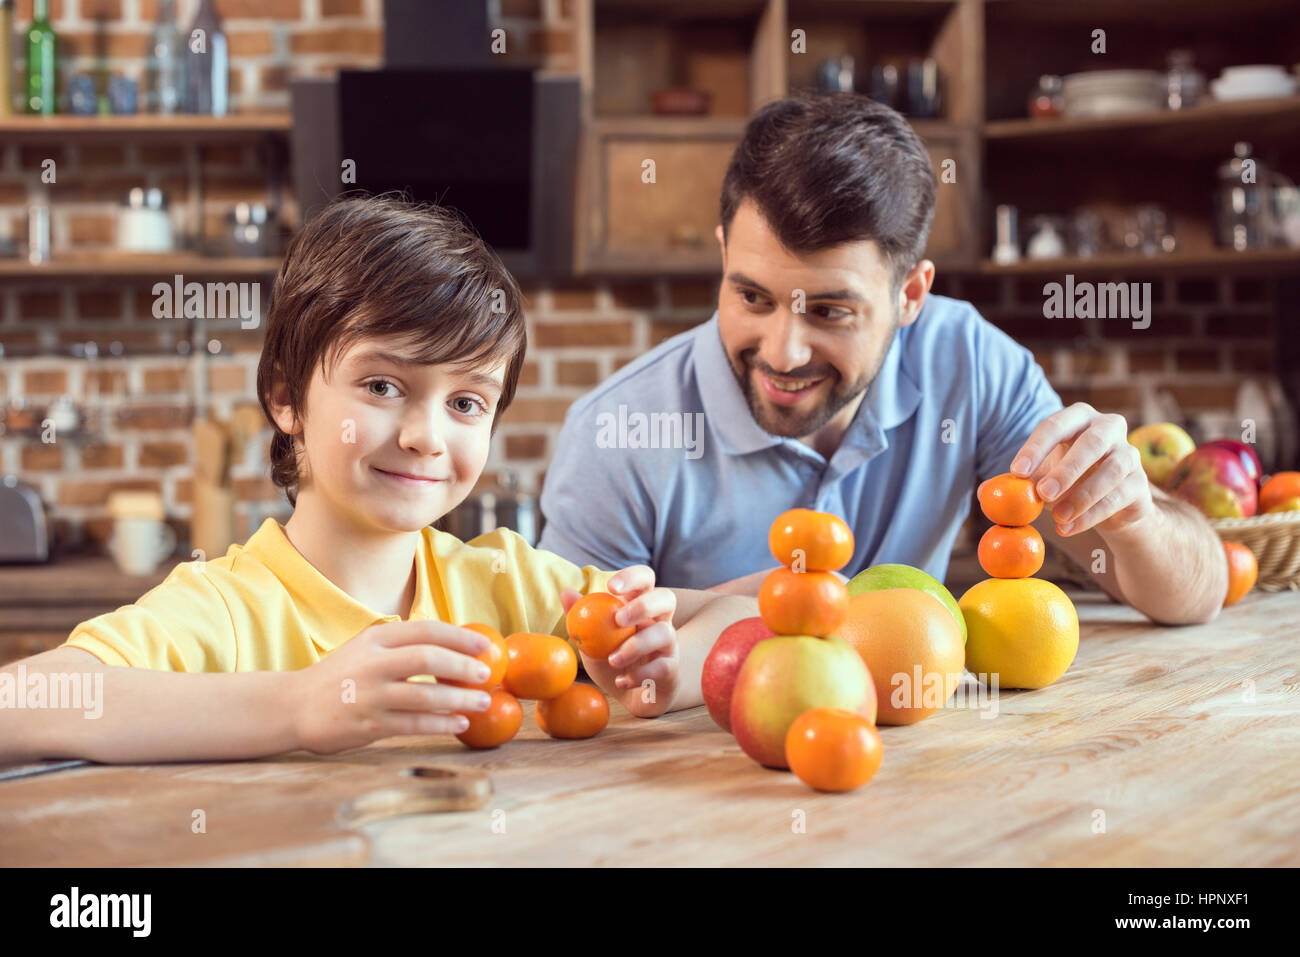 father and son playing with citrus fruits at kitchen table - Stock Image